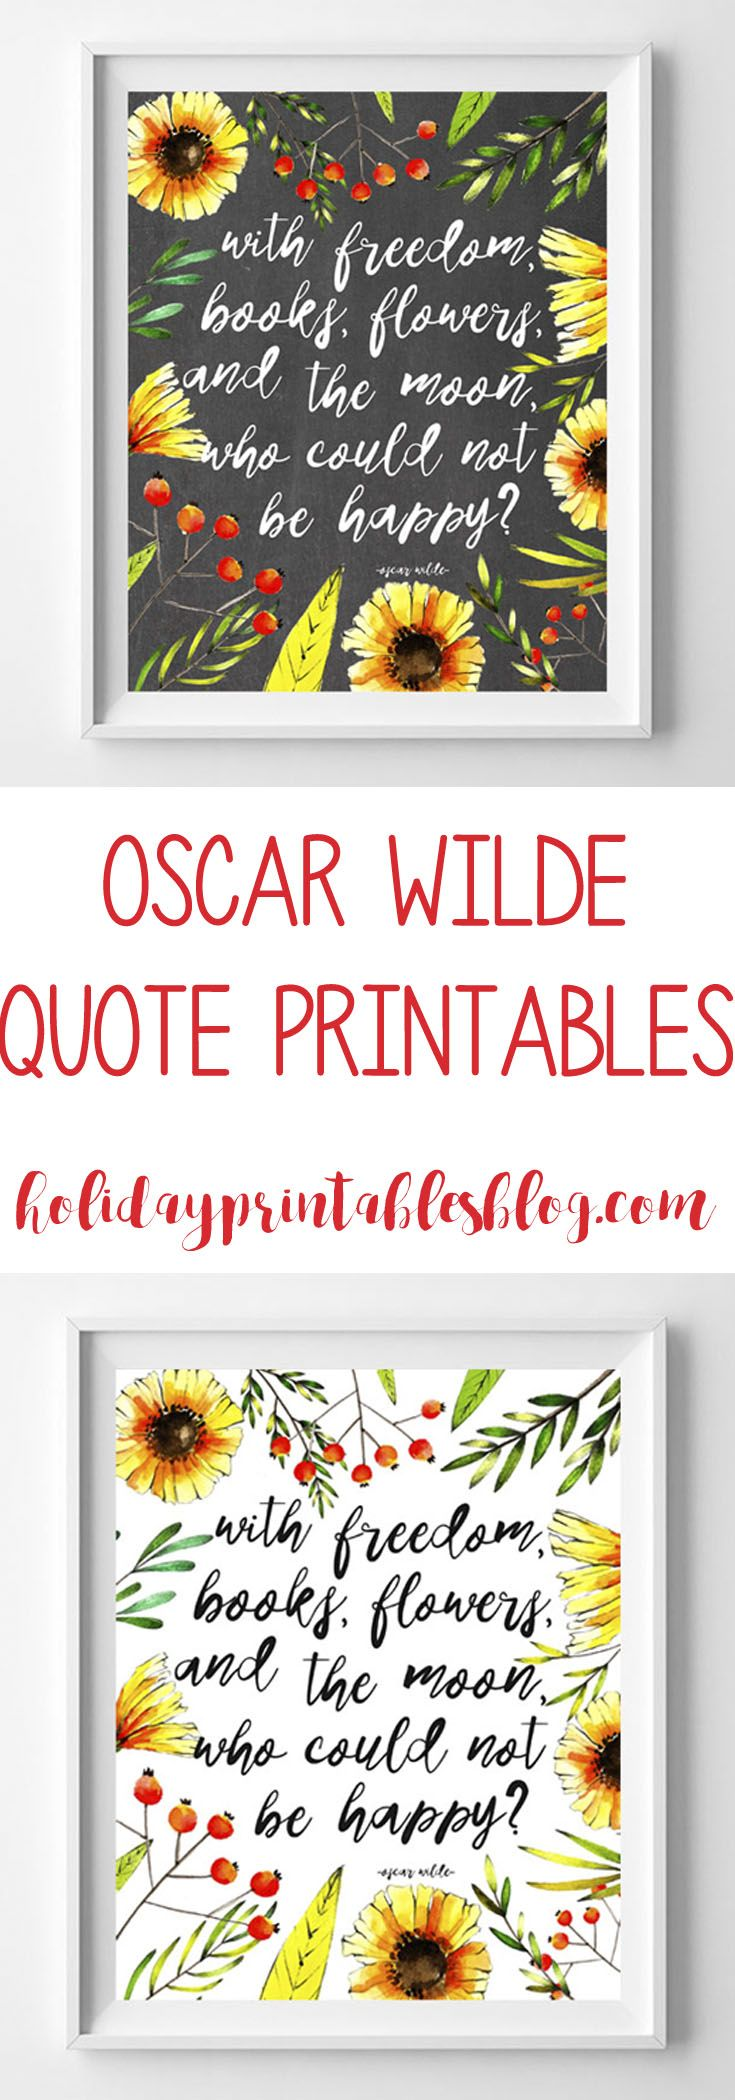 Oscar Wilde quote free printable art! Featuring sunflowers and a chalkboard or white background, this printable art is perfect for your spring or summer home decor!